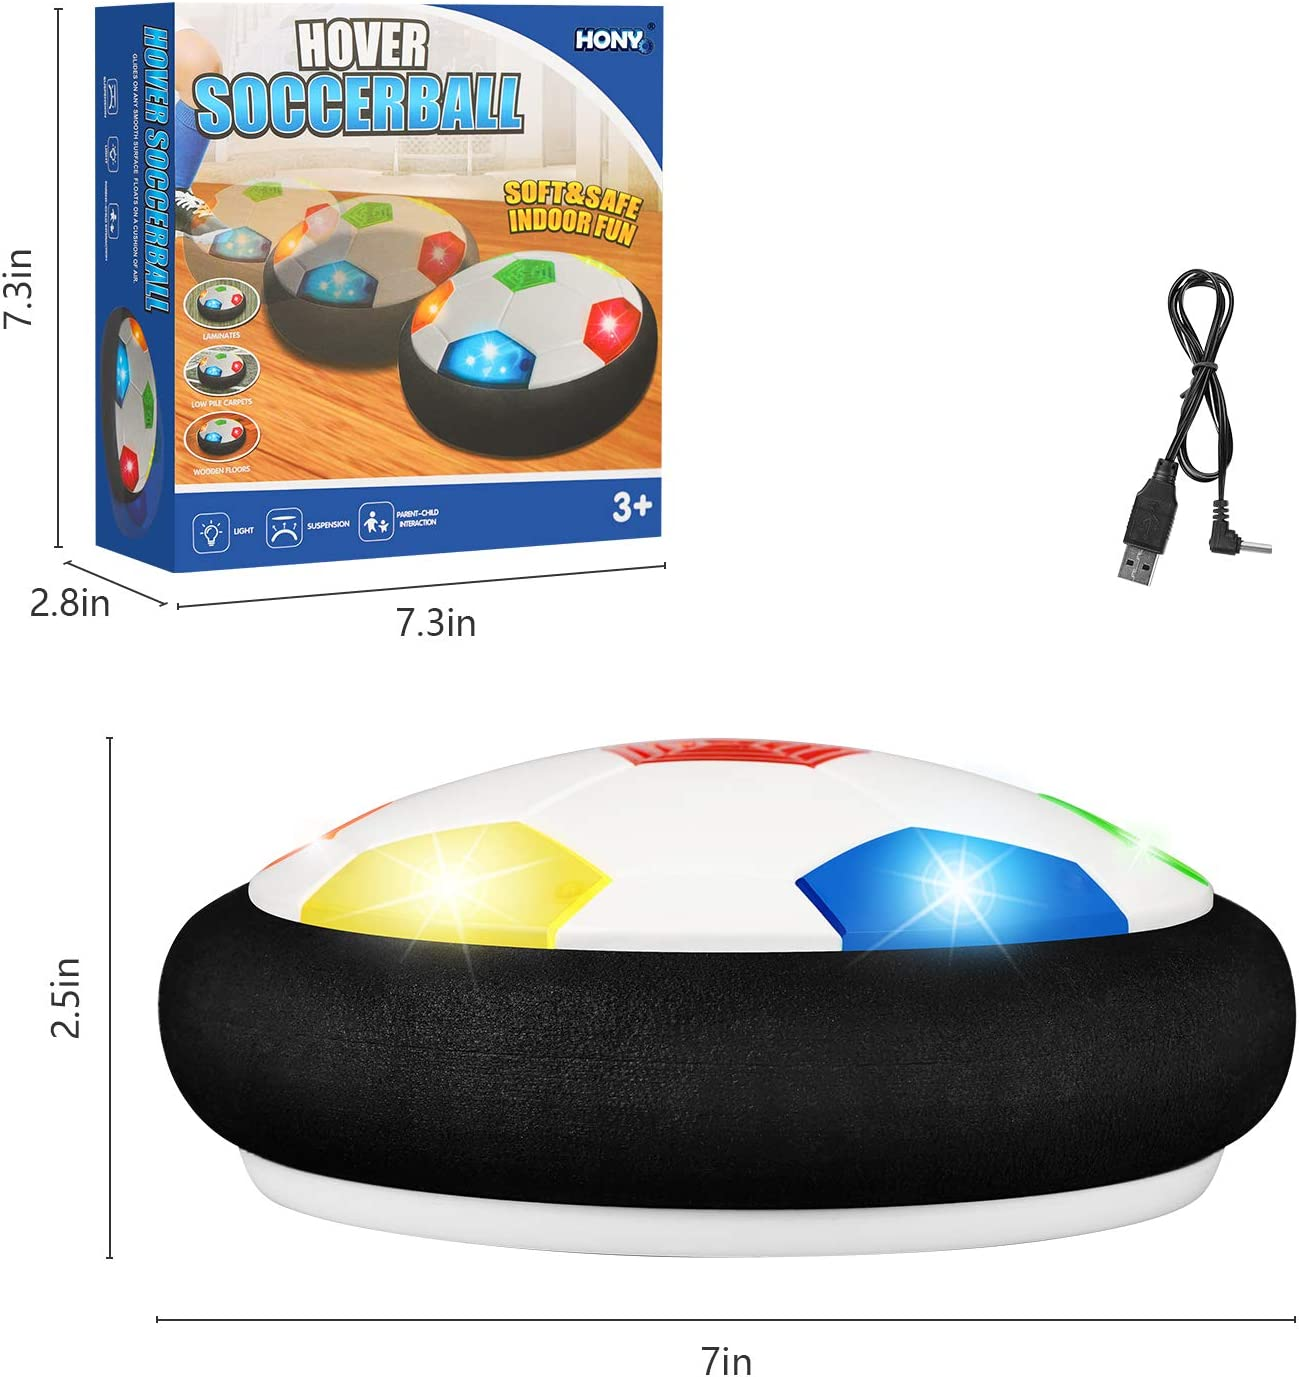 Kids Toys Hover Soccer Ball,Indoor Floating Soccer Rechargeable Air Soccer with Color LED Light and Soft Foam Bumper,Upgrade Training Soccer Toys Gift for Boys Girls Age 3 4 5 6 7 8 9 10 - 16 Year Old: Toys & Games